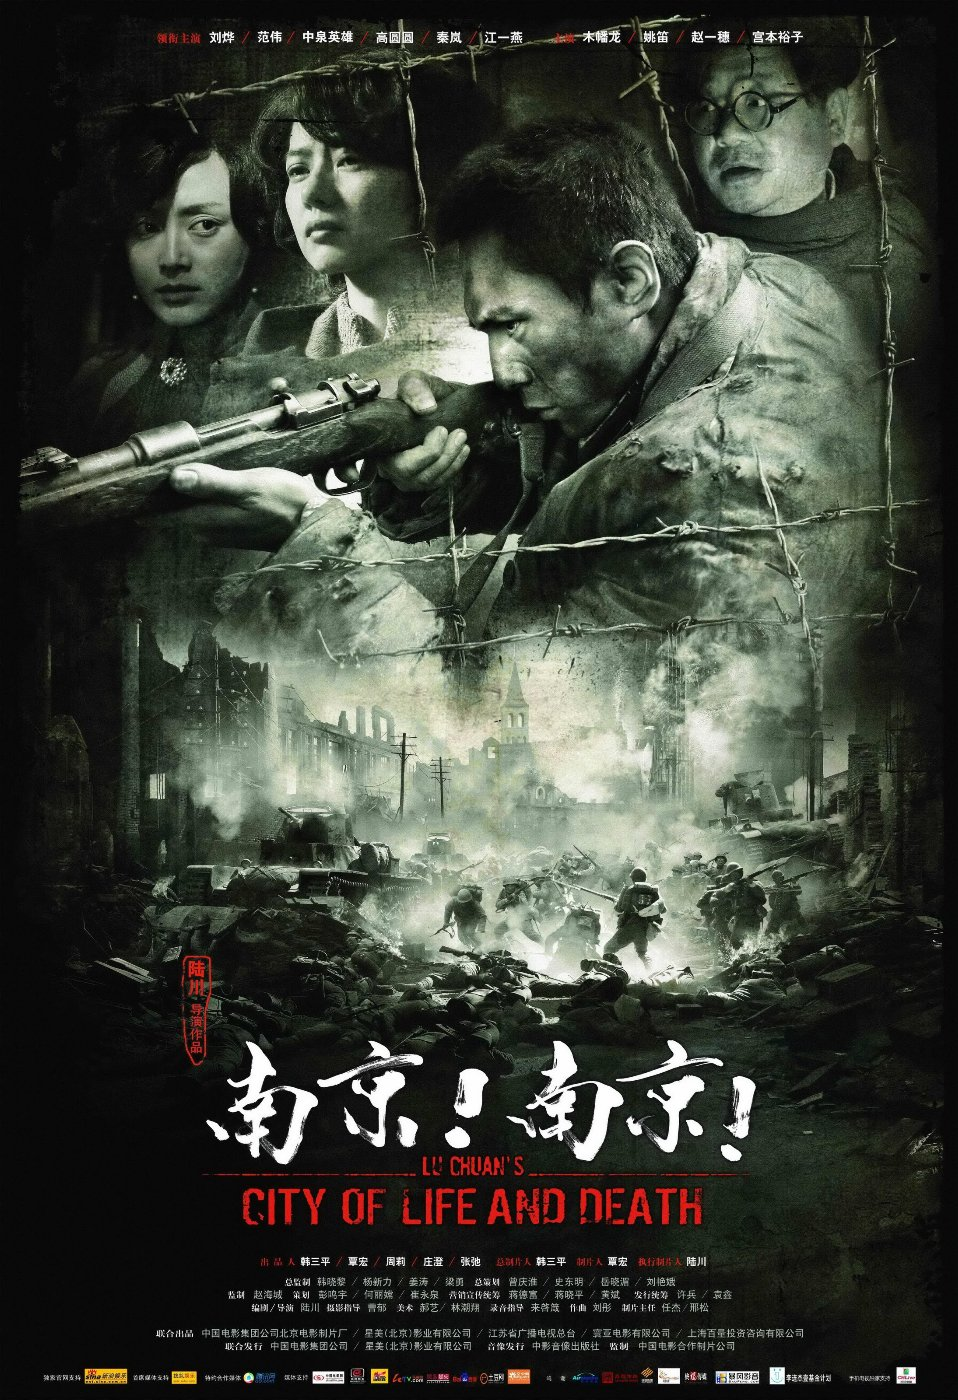 Город жизни и смерти [2009] / City of Life and Death / Nanjing! Nanjing!